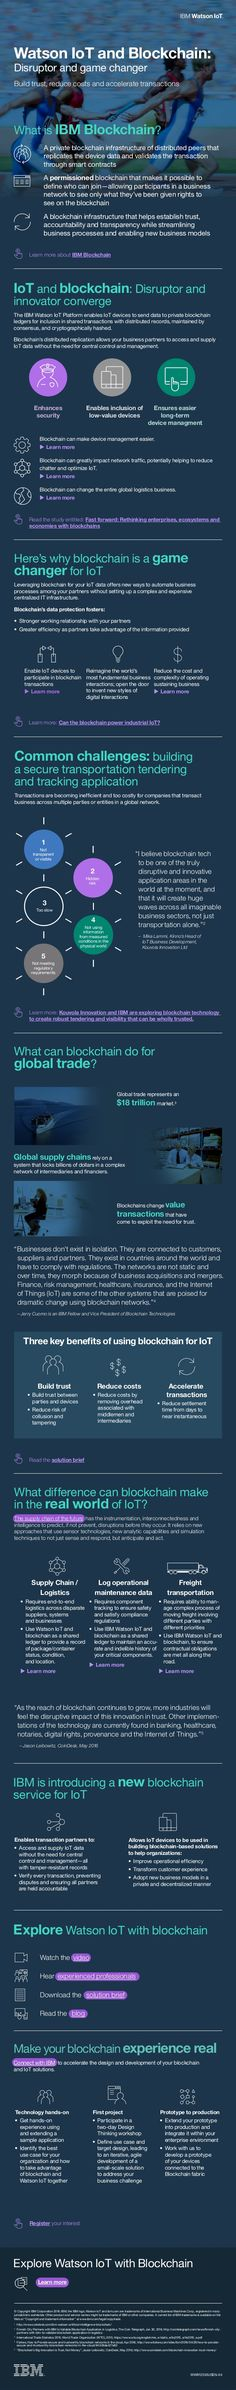 Watson IoT & Blockchain - disruptor and game changer [Infographic] - IBM iCoinPRO the biggest Bitcoin & Cryptocurrency Opportunity . Join the Team now Cryptocurrency Trading, Bitcoin Cryptocurrency, Blockchain Cryptocurrency, Machine Learning Deep Learning, Crypto Money, Bitcoin Business, Internet, Data Analytics, Blockchain Technology